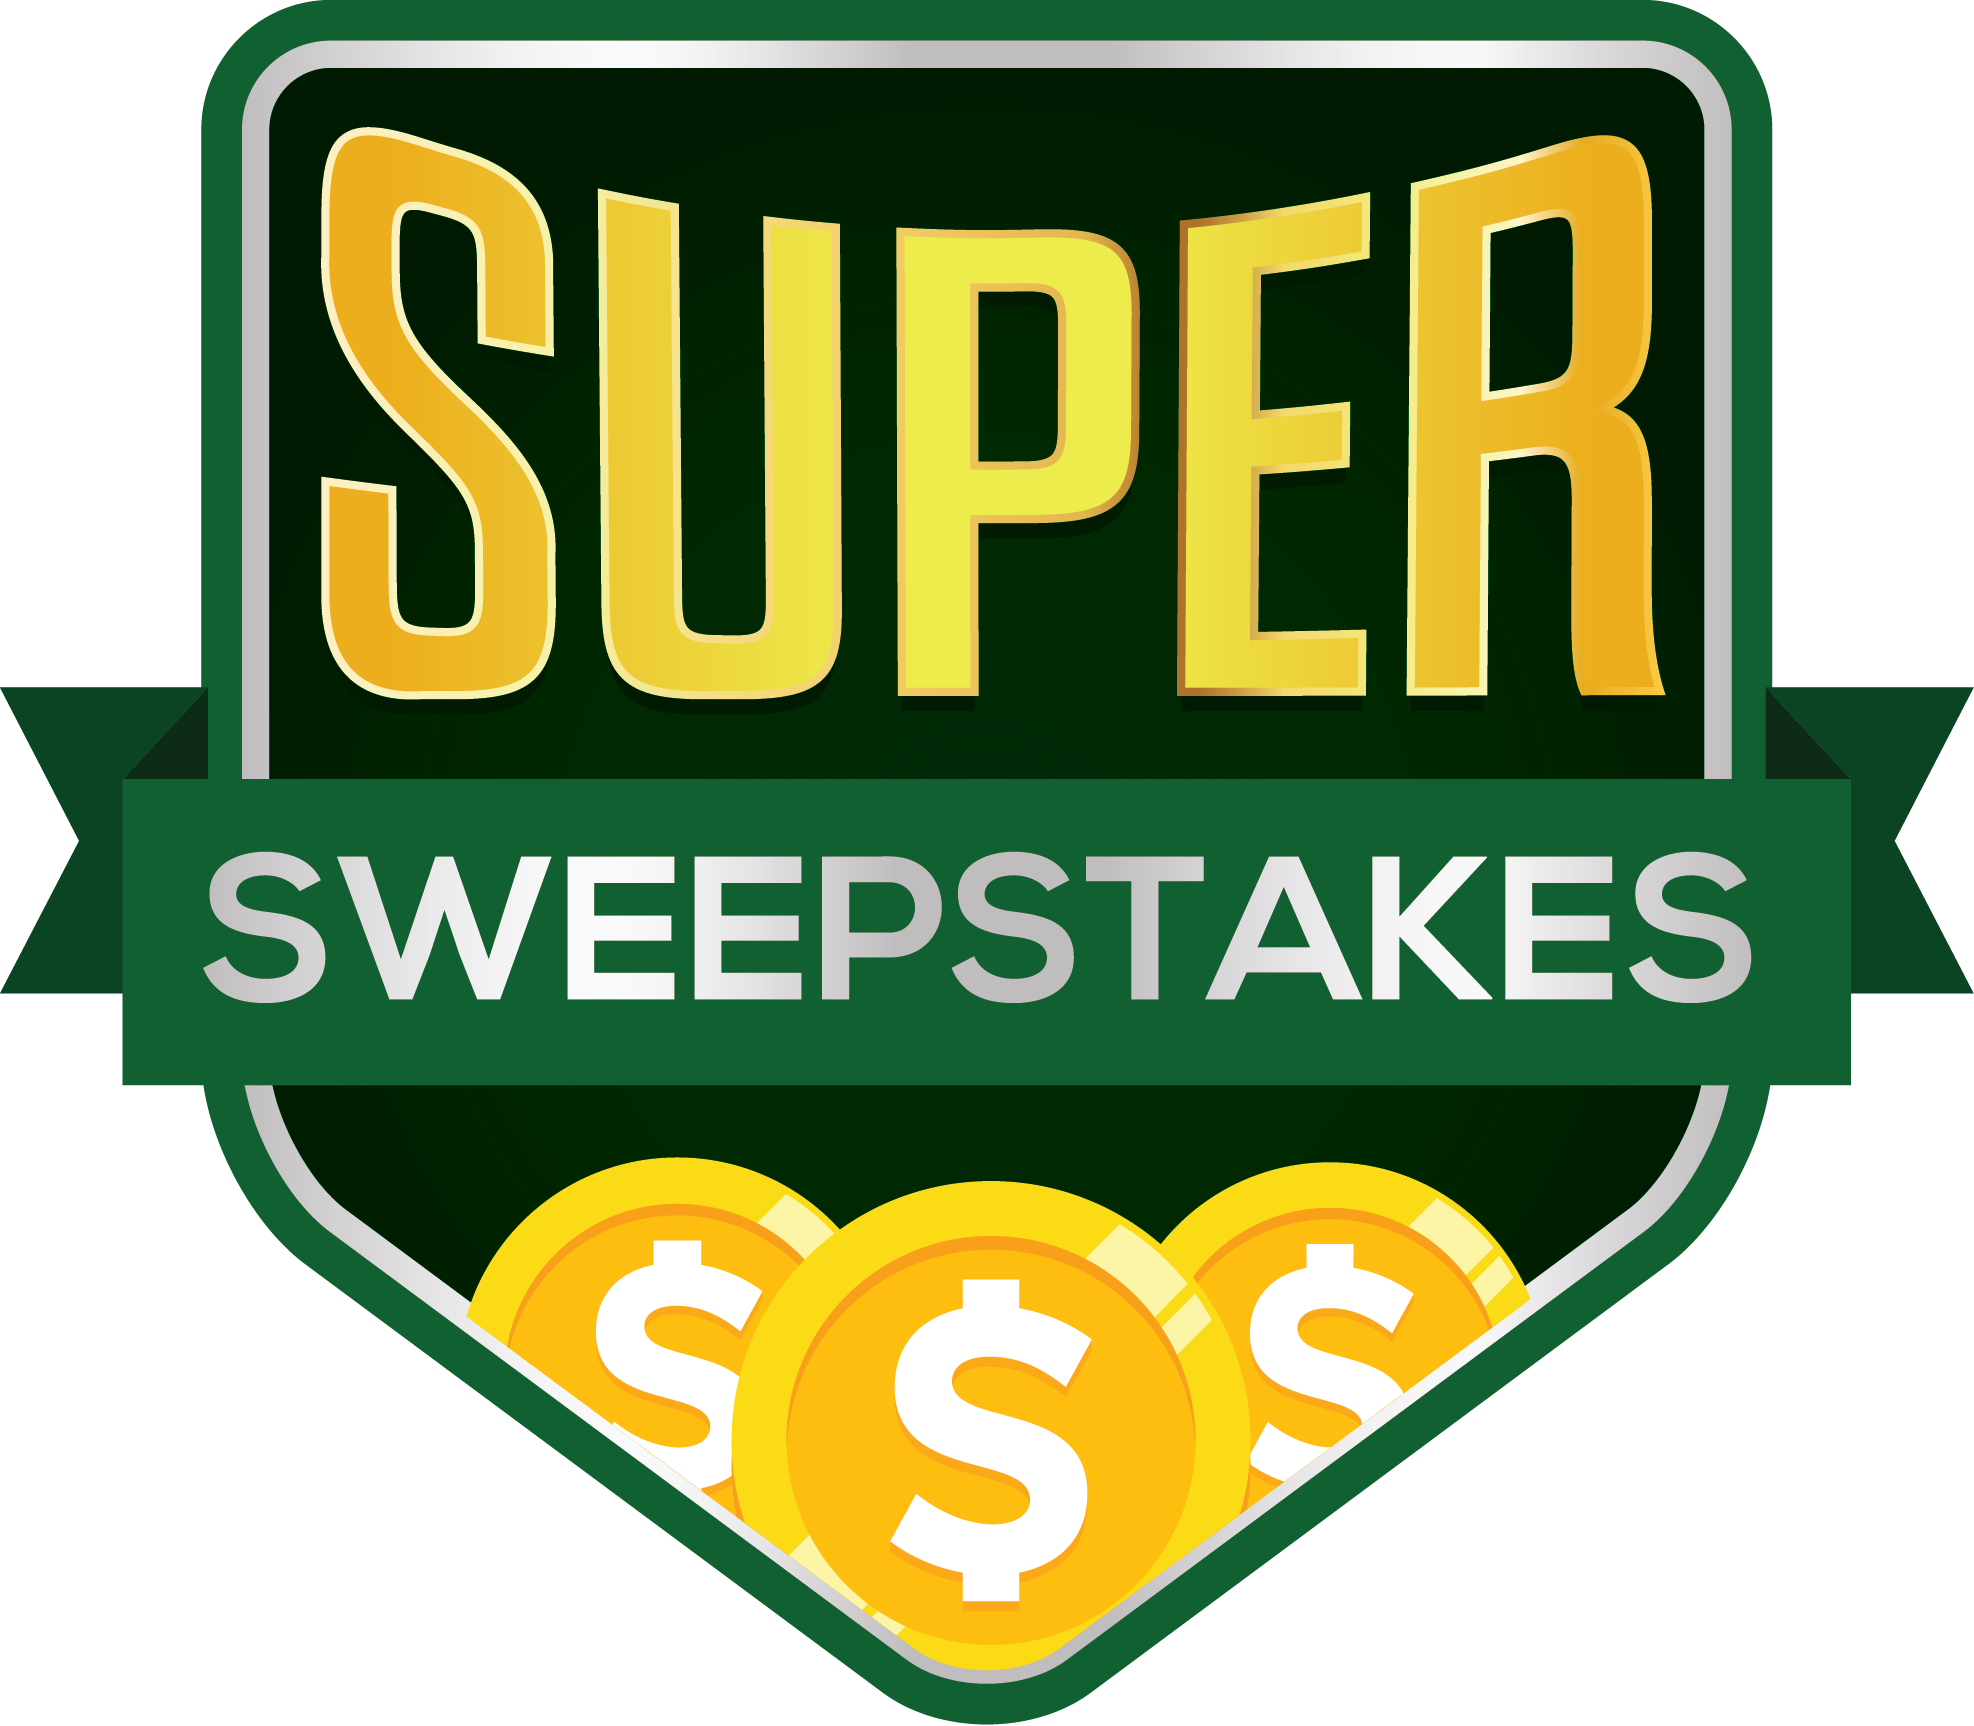 Super-Sweepstakes - Special Offers | Sweepstakes, Sweepstakes winner,  Online sweepstakes